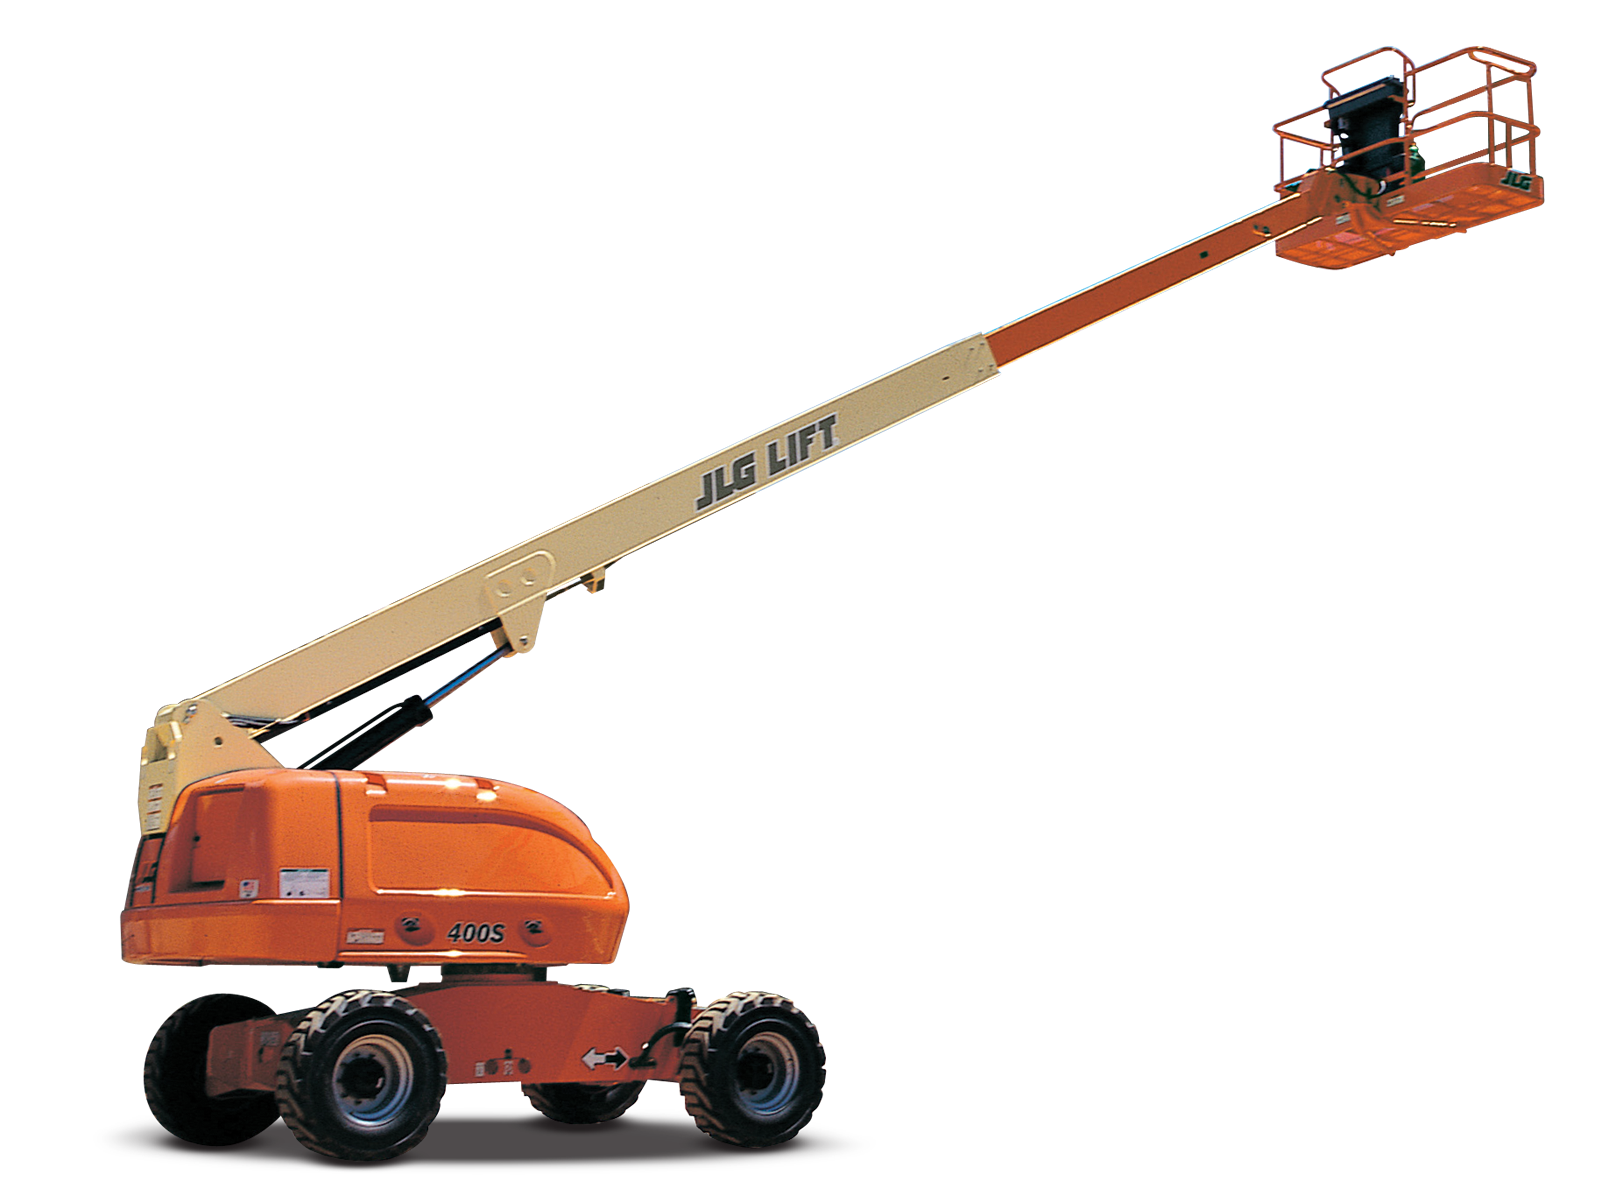 JLG Lift Booms for Rental Sunman Indiana